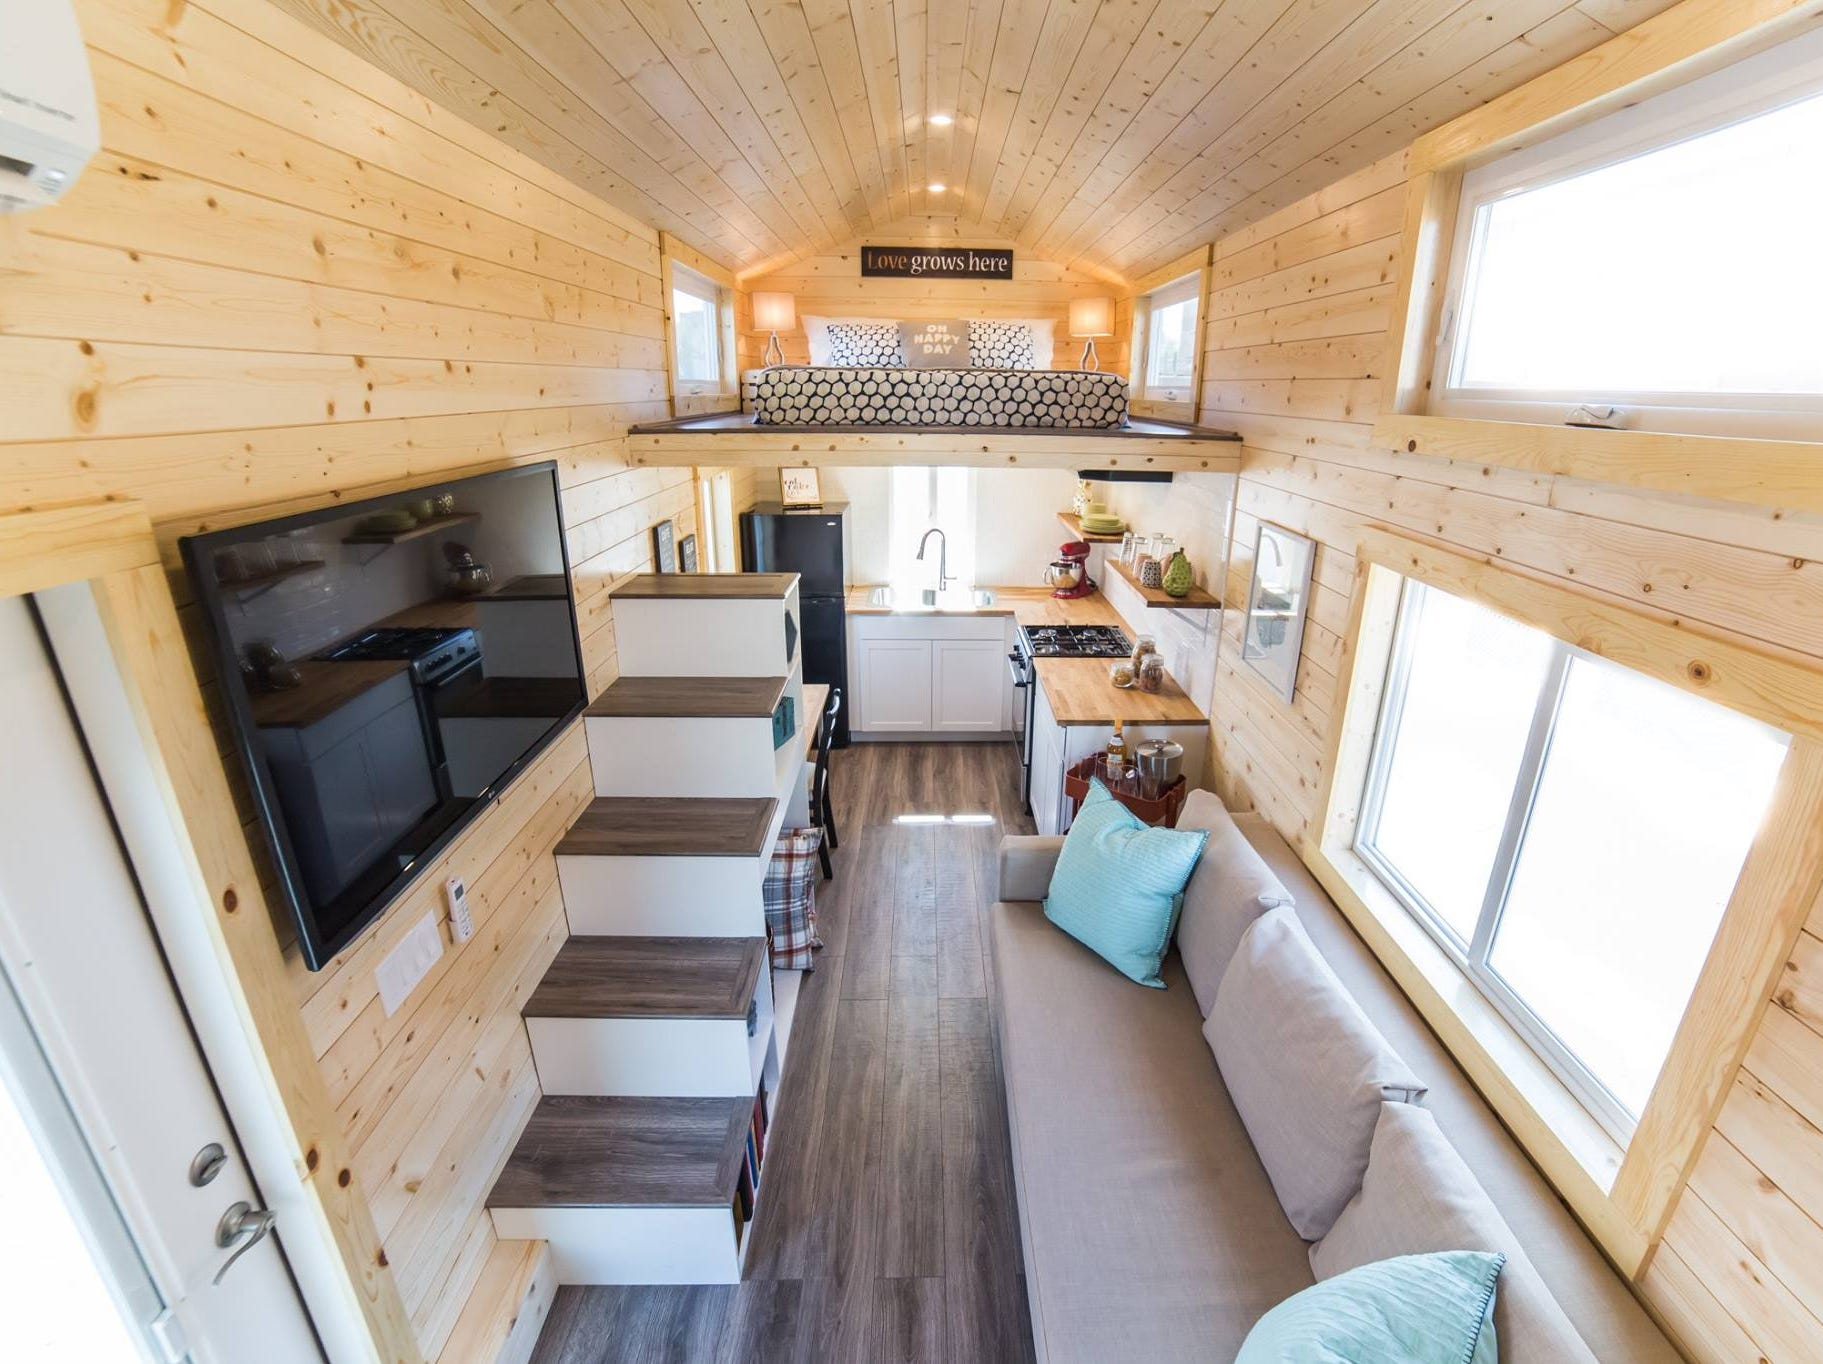 An aerial view from one end of a tiny home to another.